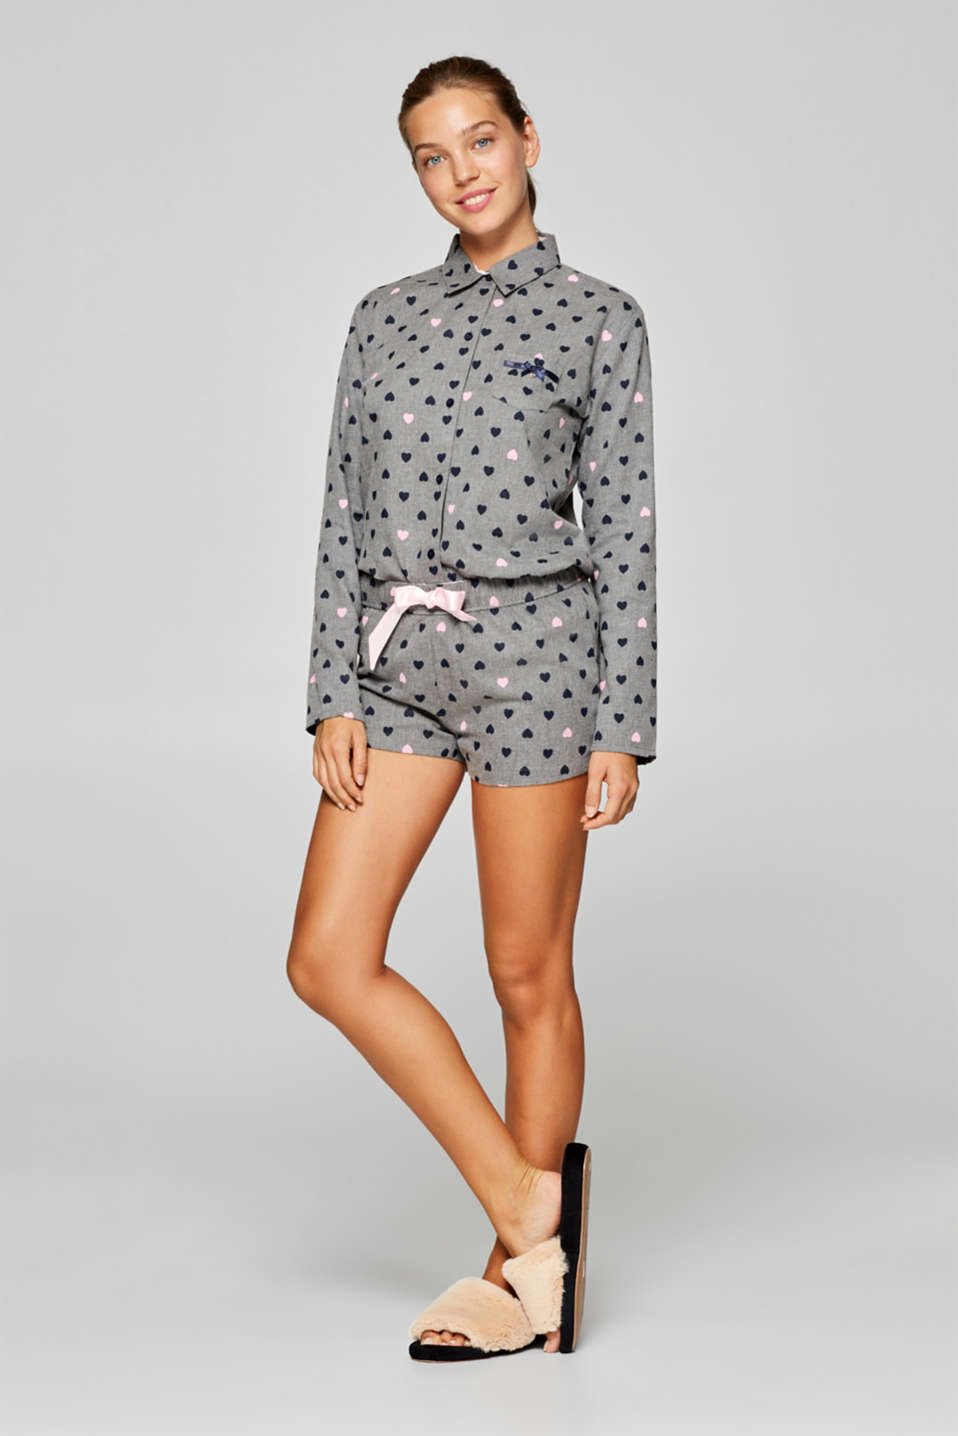 Esprit - Shorts with a little heart print